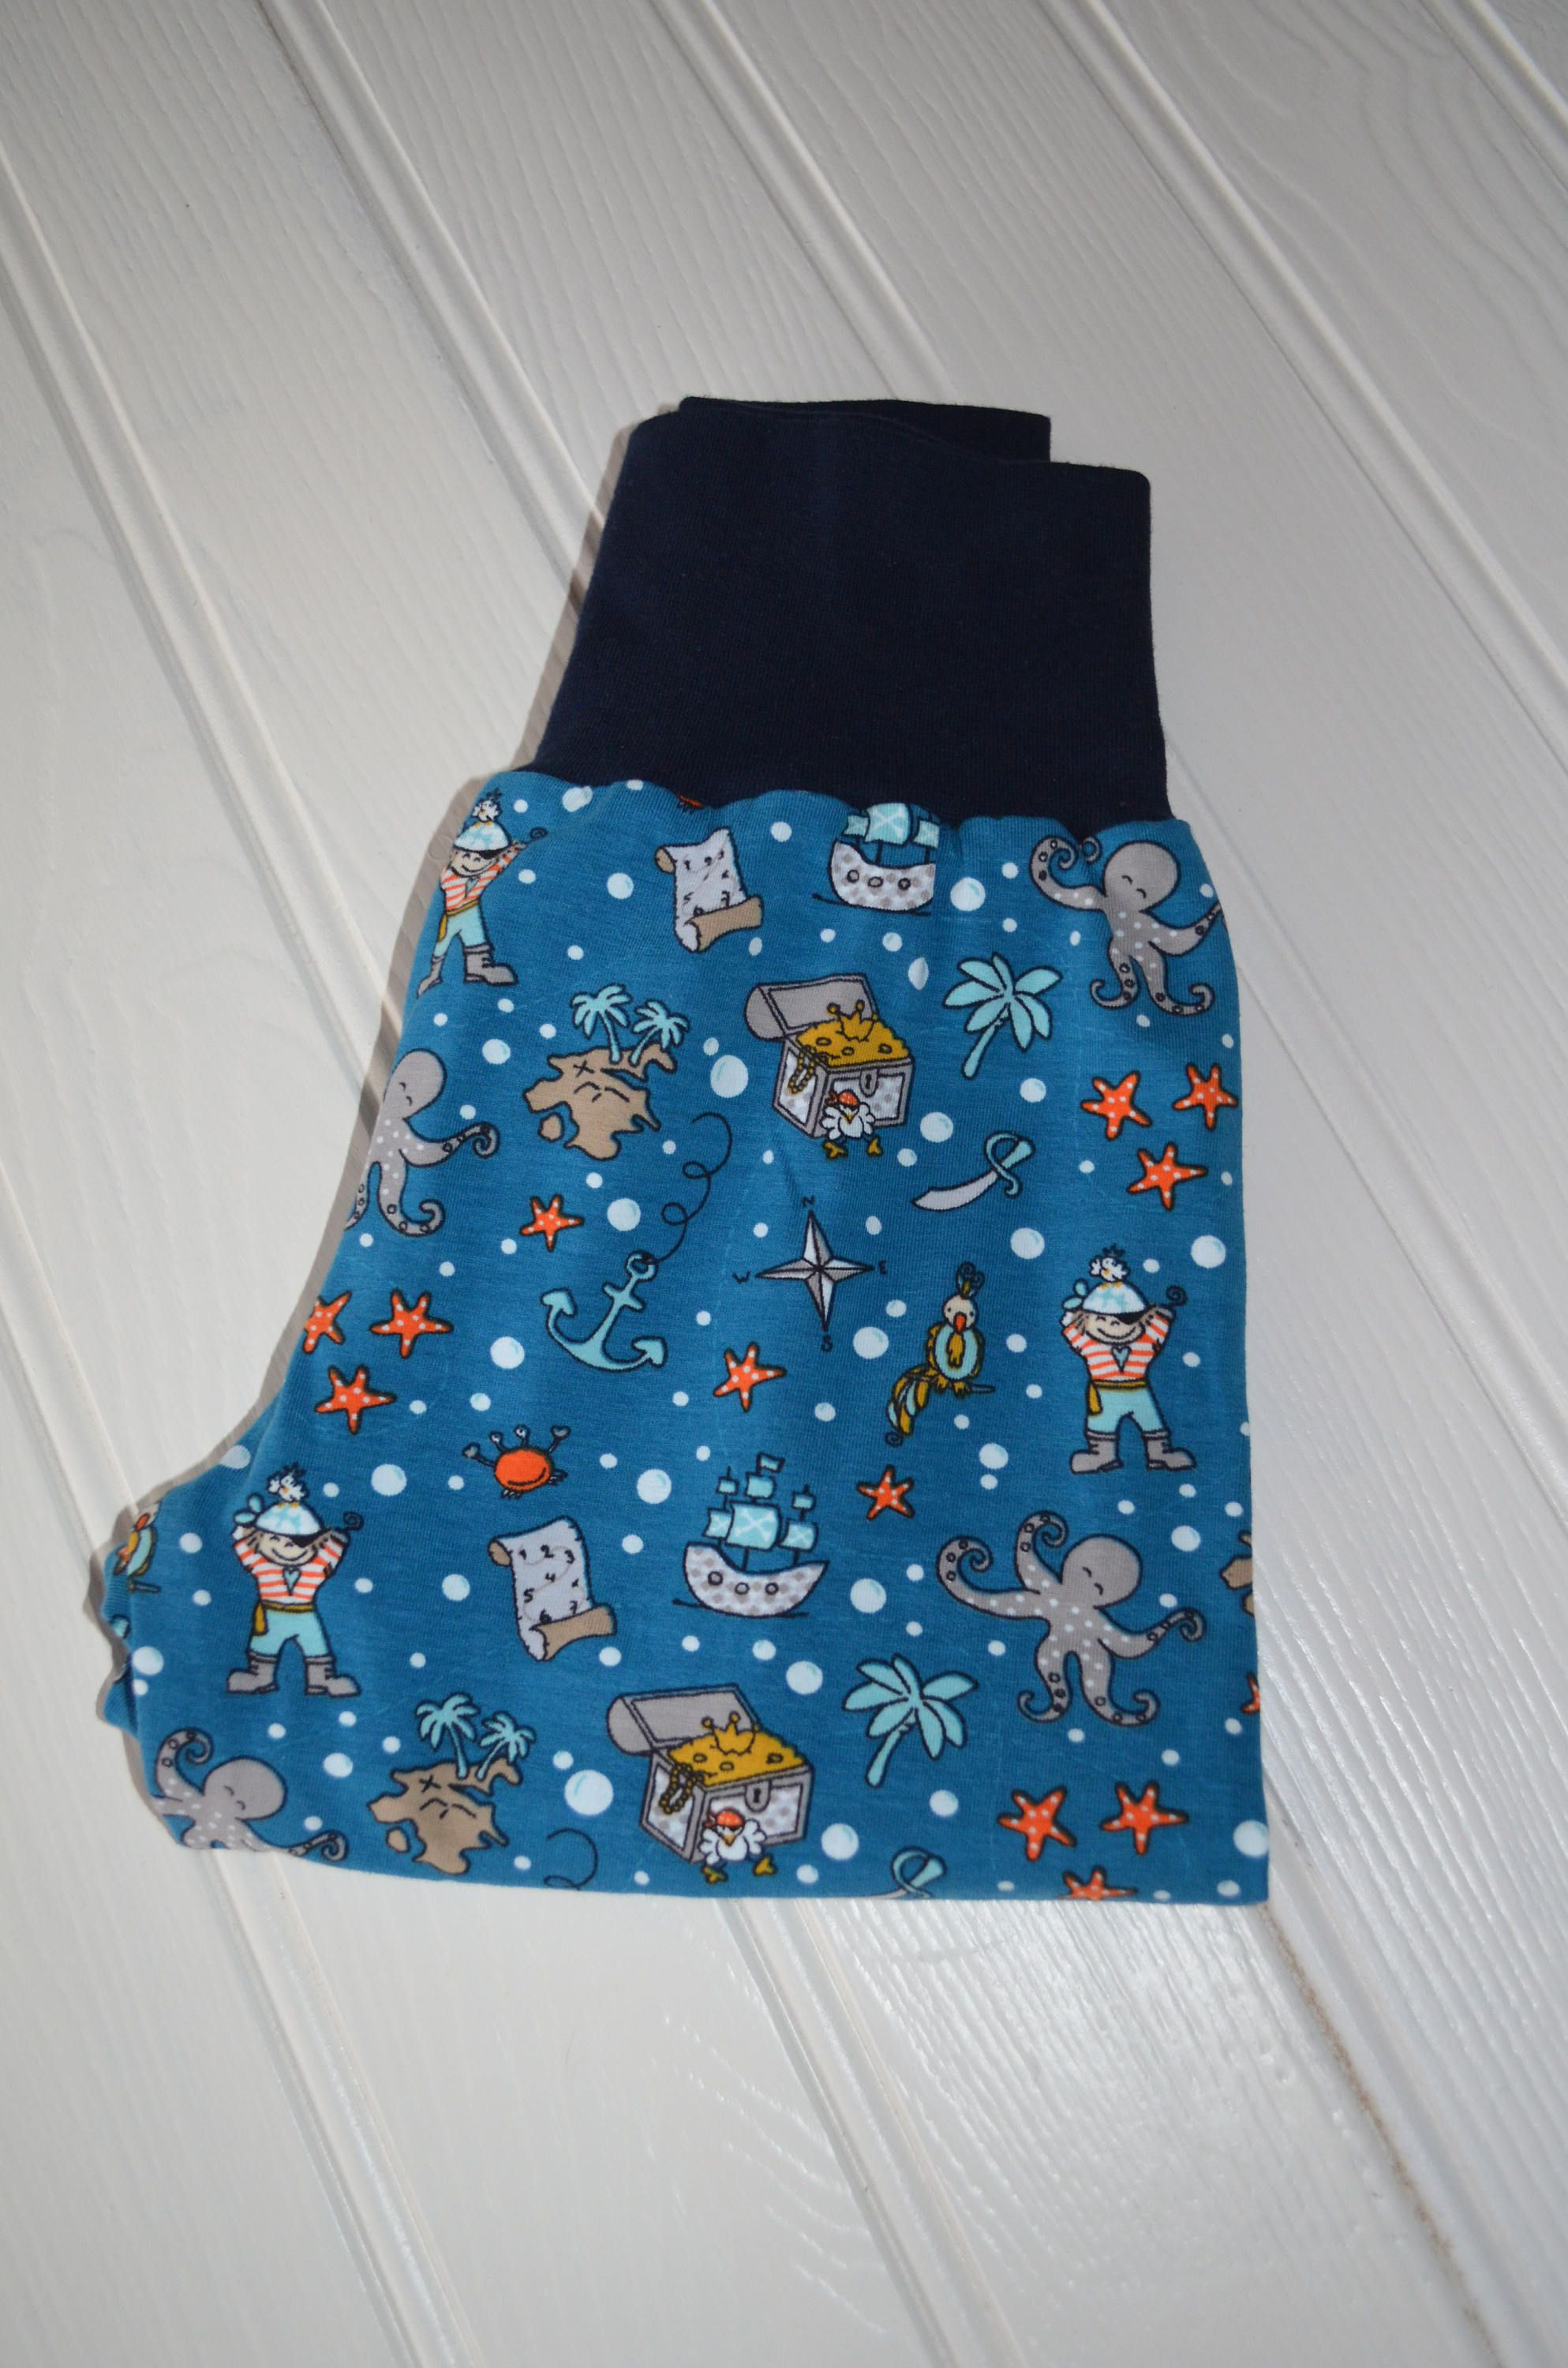 Pirate Harem Pants, Pirate ships, Size 3 years, Under The Sea, Blue Harem trousers, Jersey Harems, Cloth Bum Harems, by BobtailsBoutique on Etsy